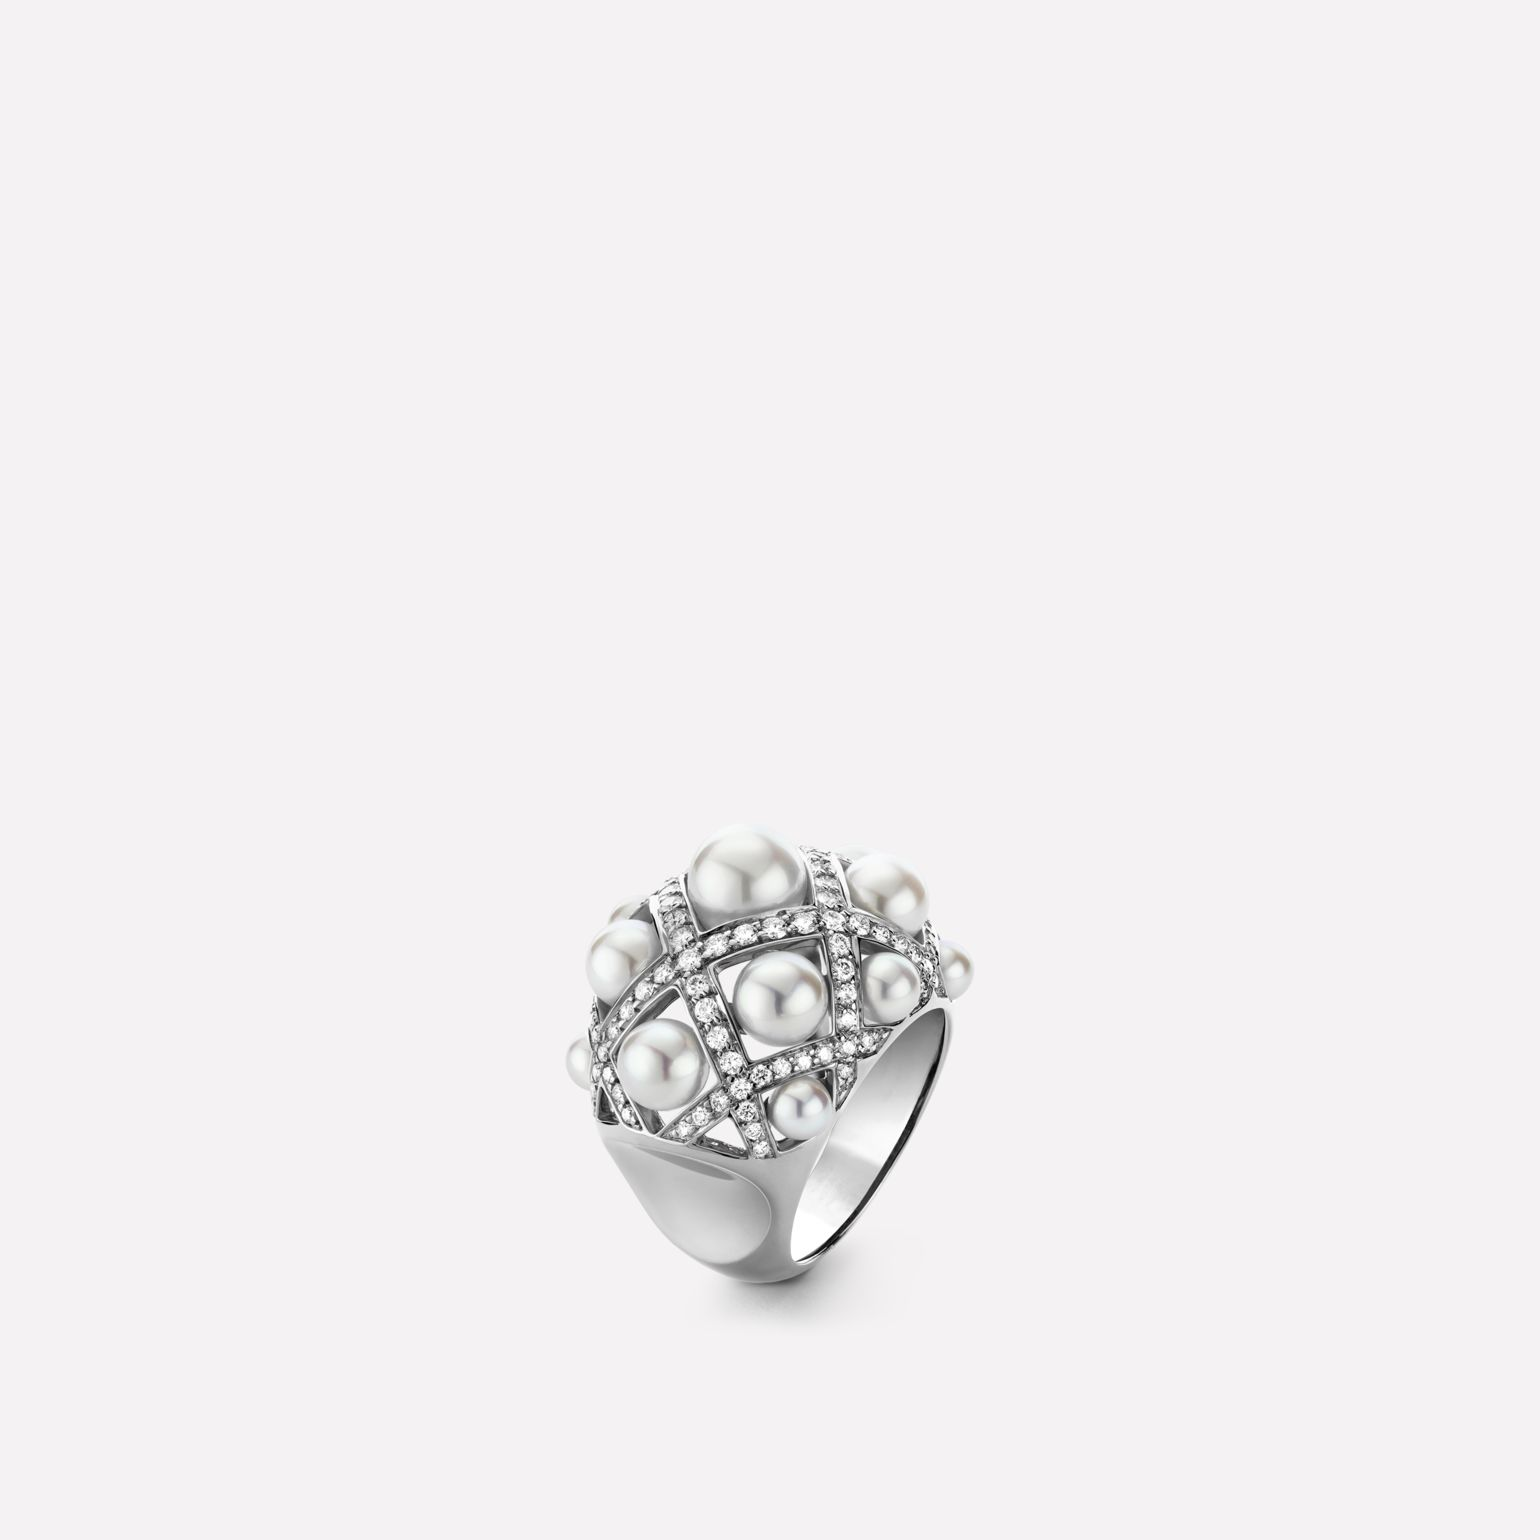 Perles Matelassé ring Large version, 18K white gold, diamonds, cultured pearls